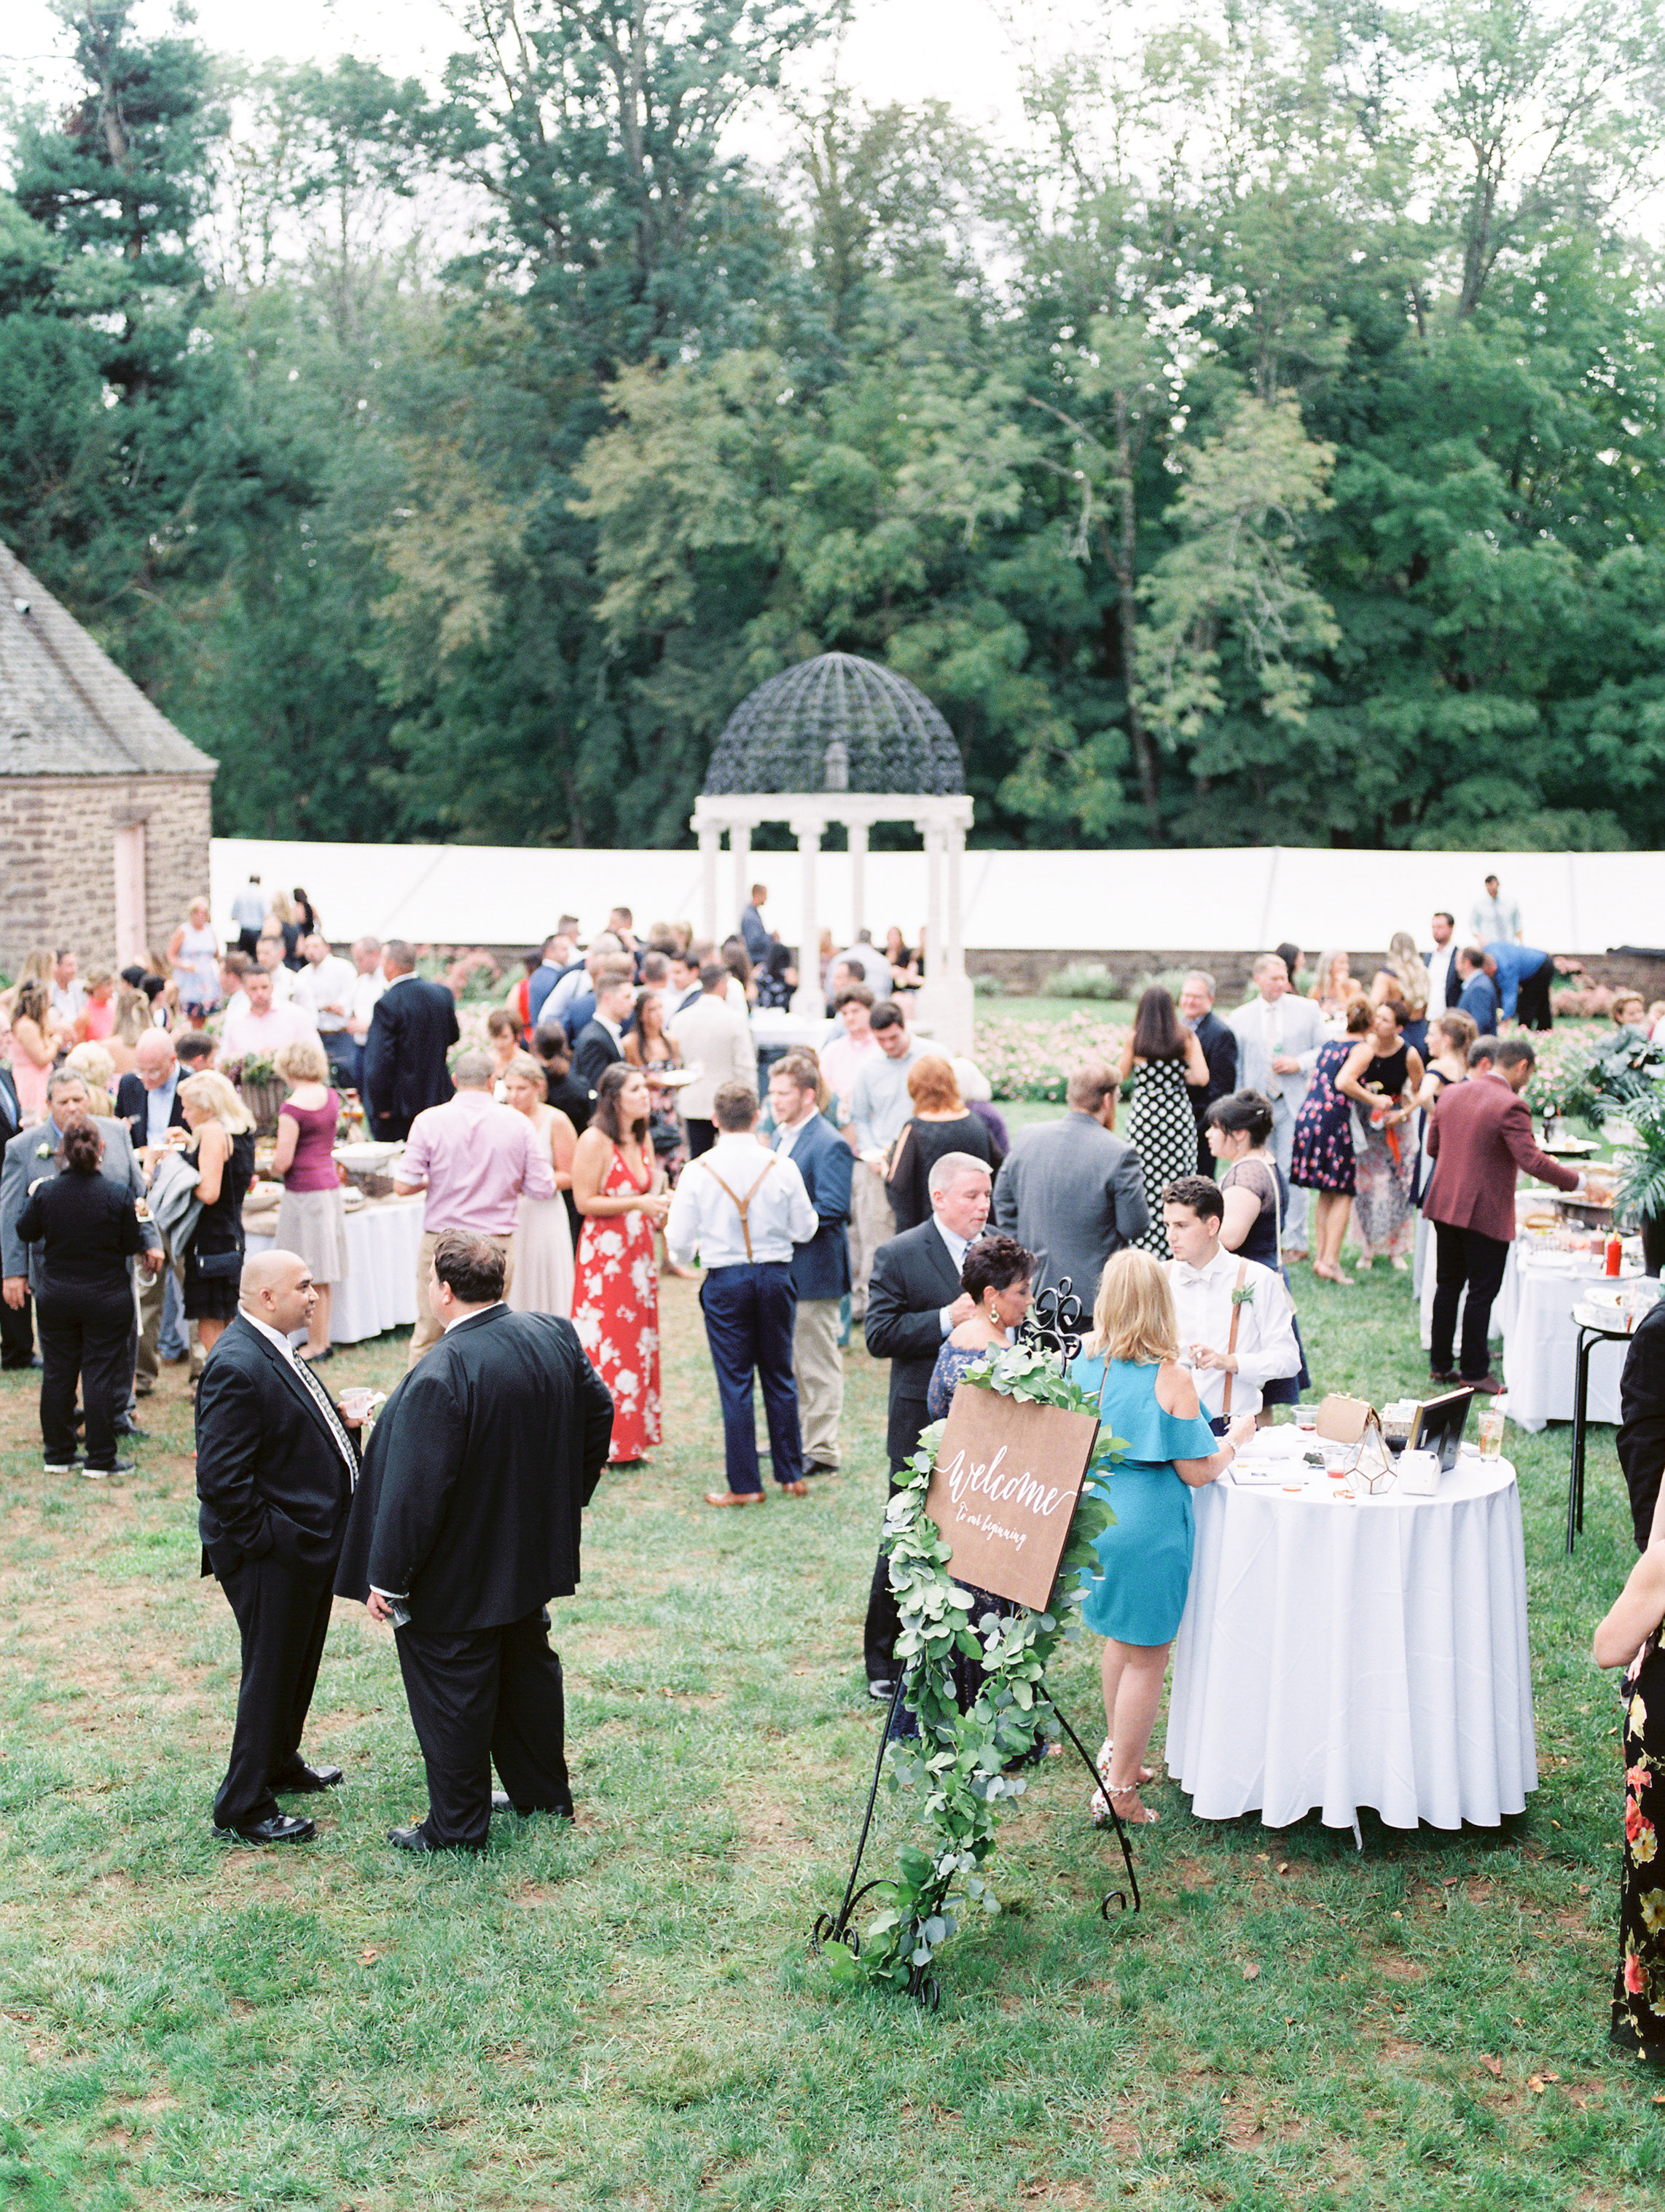 Cocktail hour in the garden is the right way to do it, we got all the European vibes from this bright boho chic Tyler Gardens wedding in Bucks County